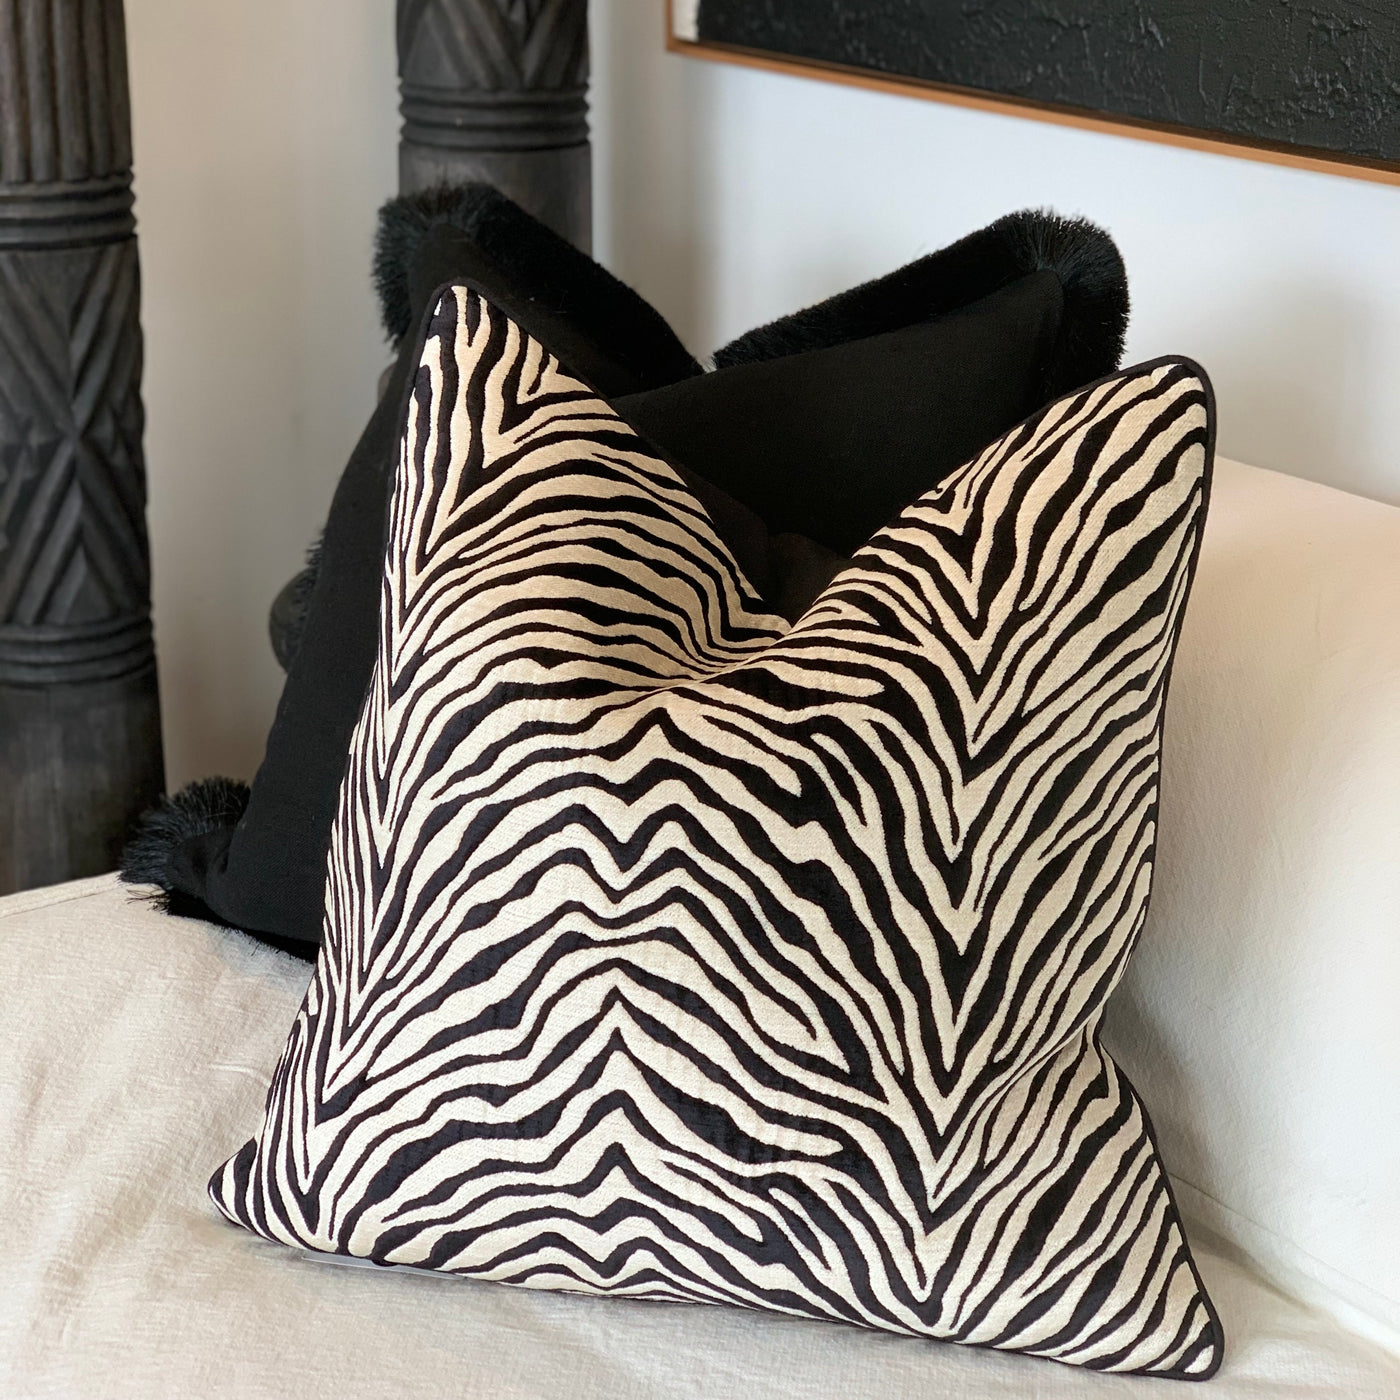 Turkish Cotton Velvet Zebra Cushion